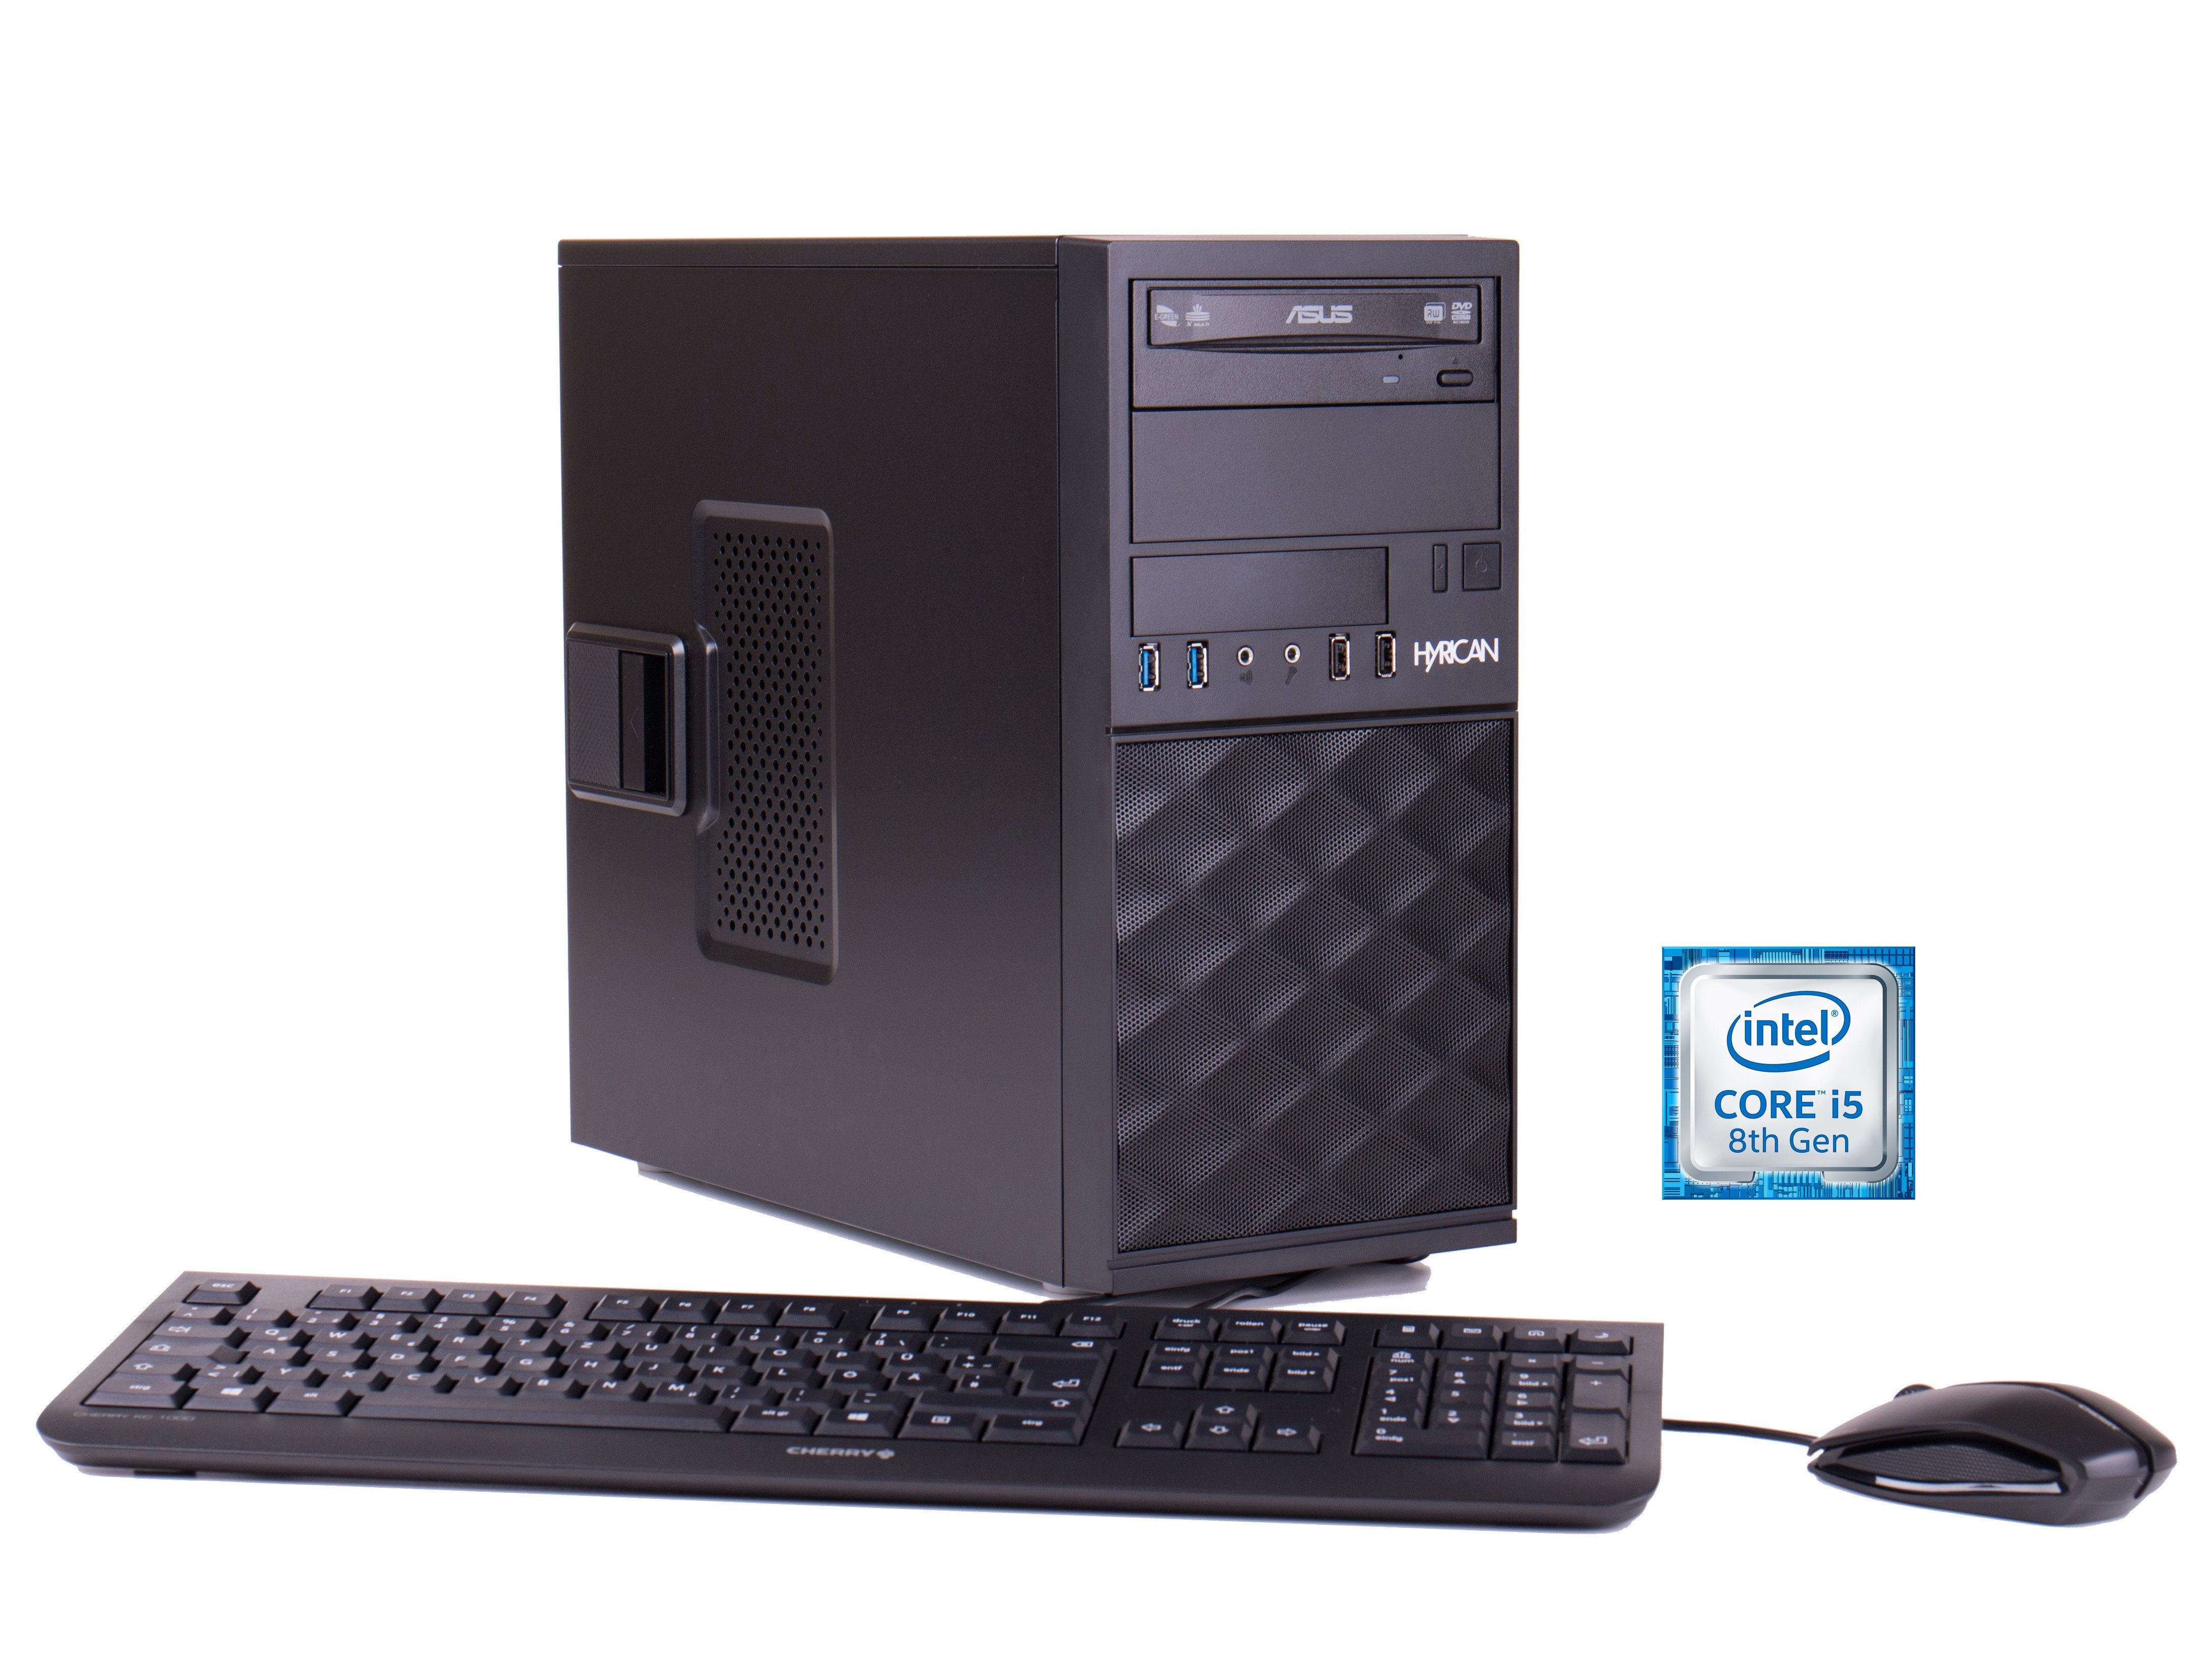 HYRICAN ProBusiness PC i5-8400 8GB 500GB PCIe SSD GTX 1070 Win 10 Pro »Workstation CTS00502«